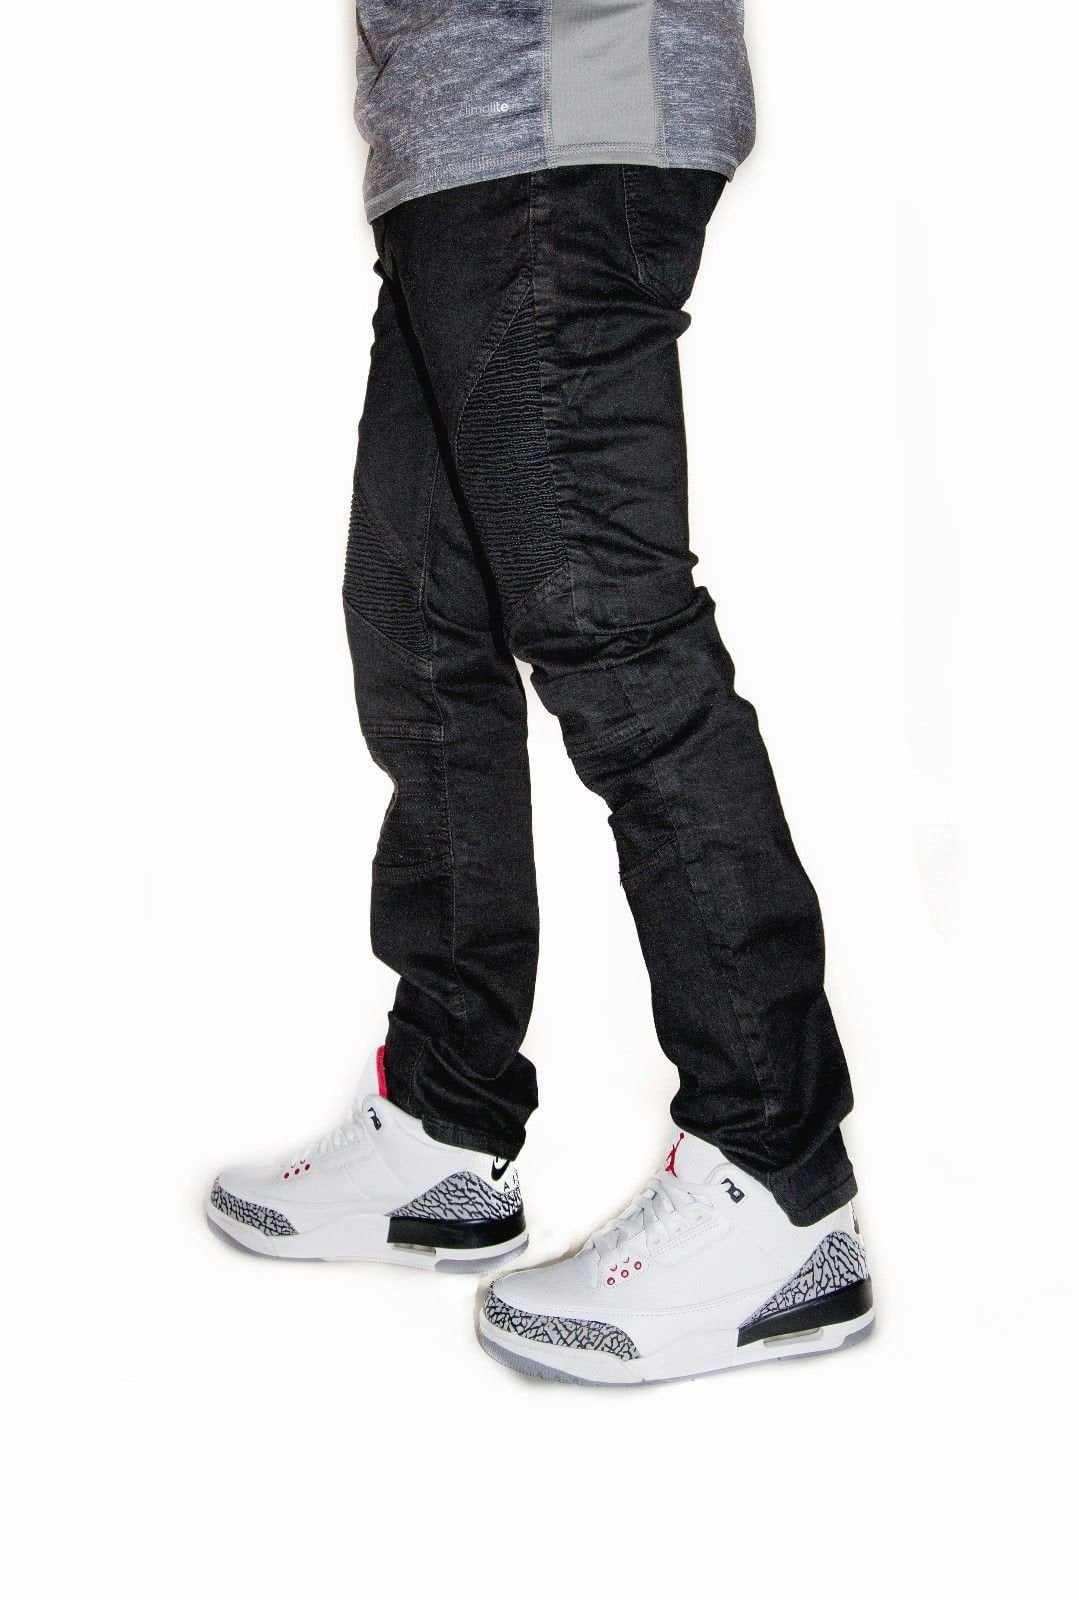 Waimea Summer Collection Biker Denim - (Black)